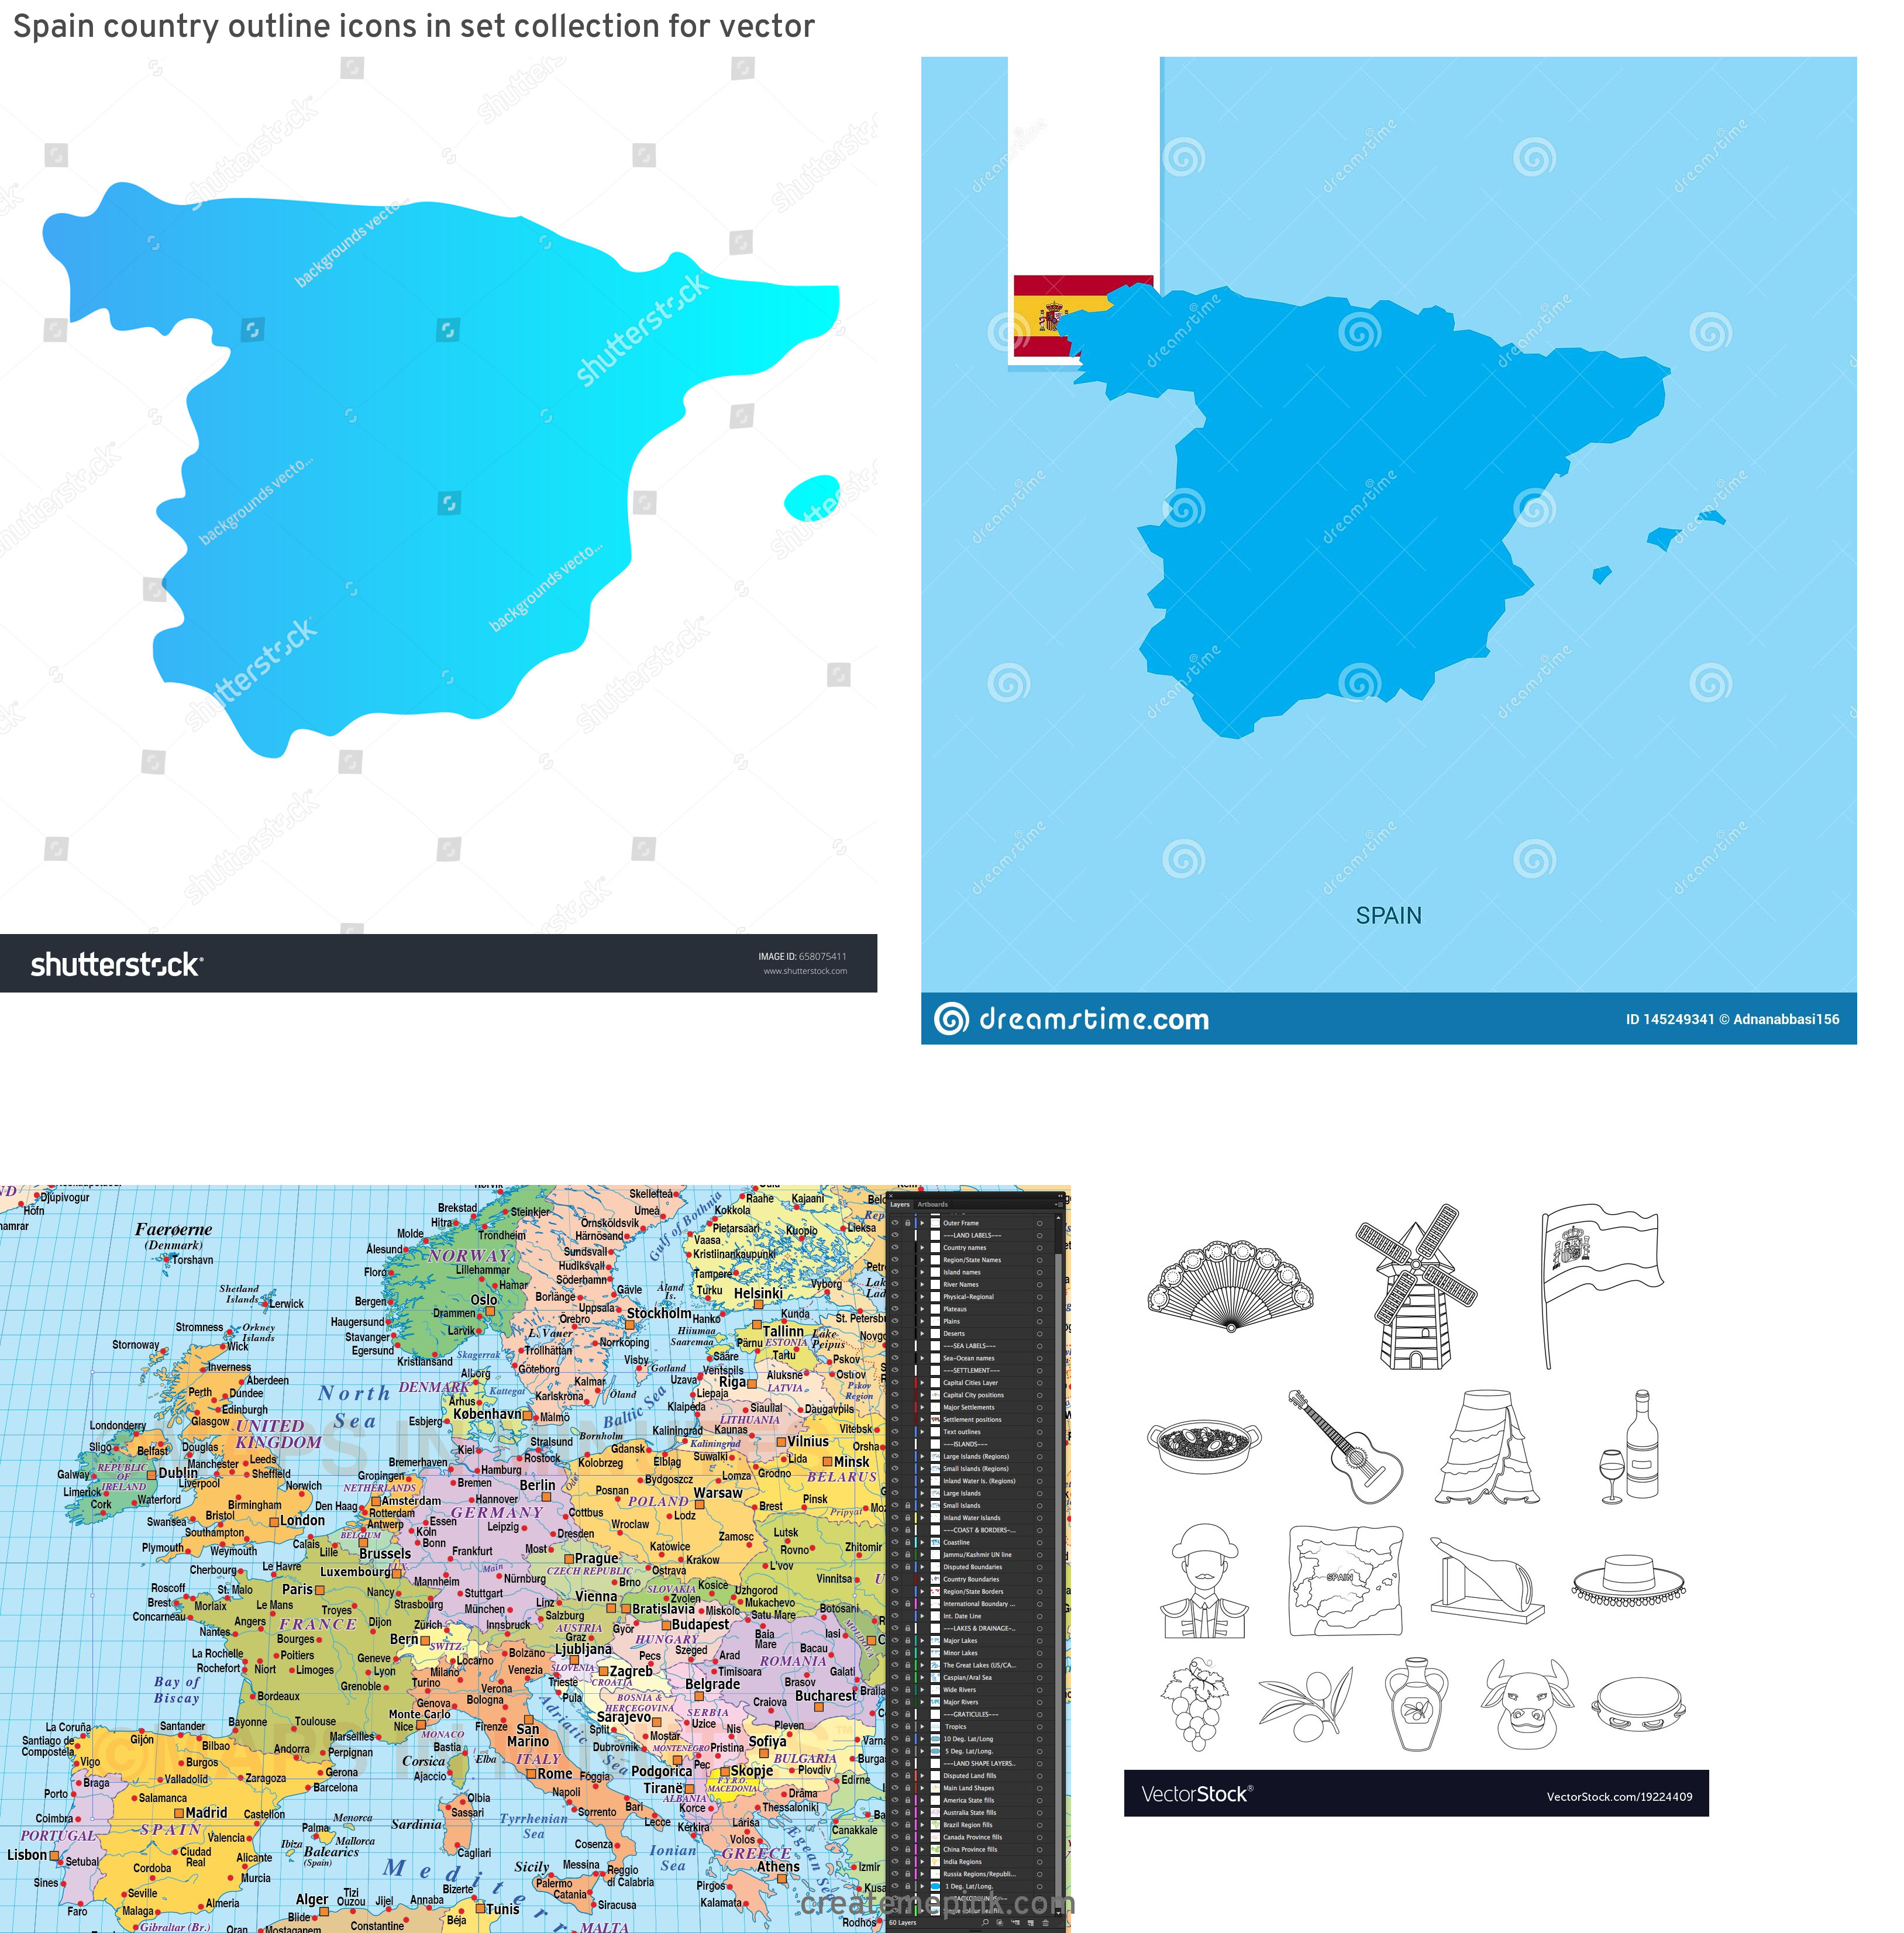 Spain Country Vectors Line: Spain Country Outline Icons In Set Collection For Vector